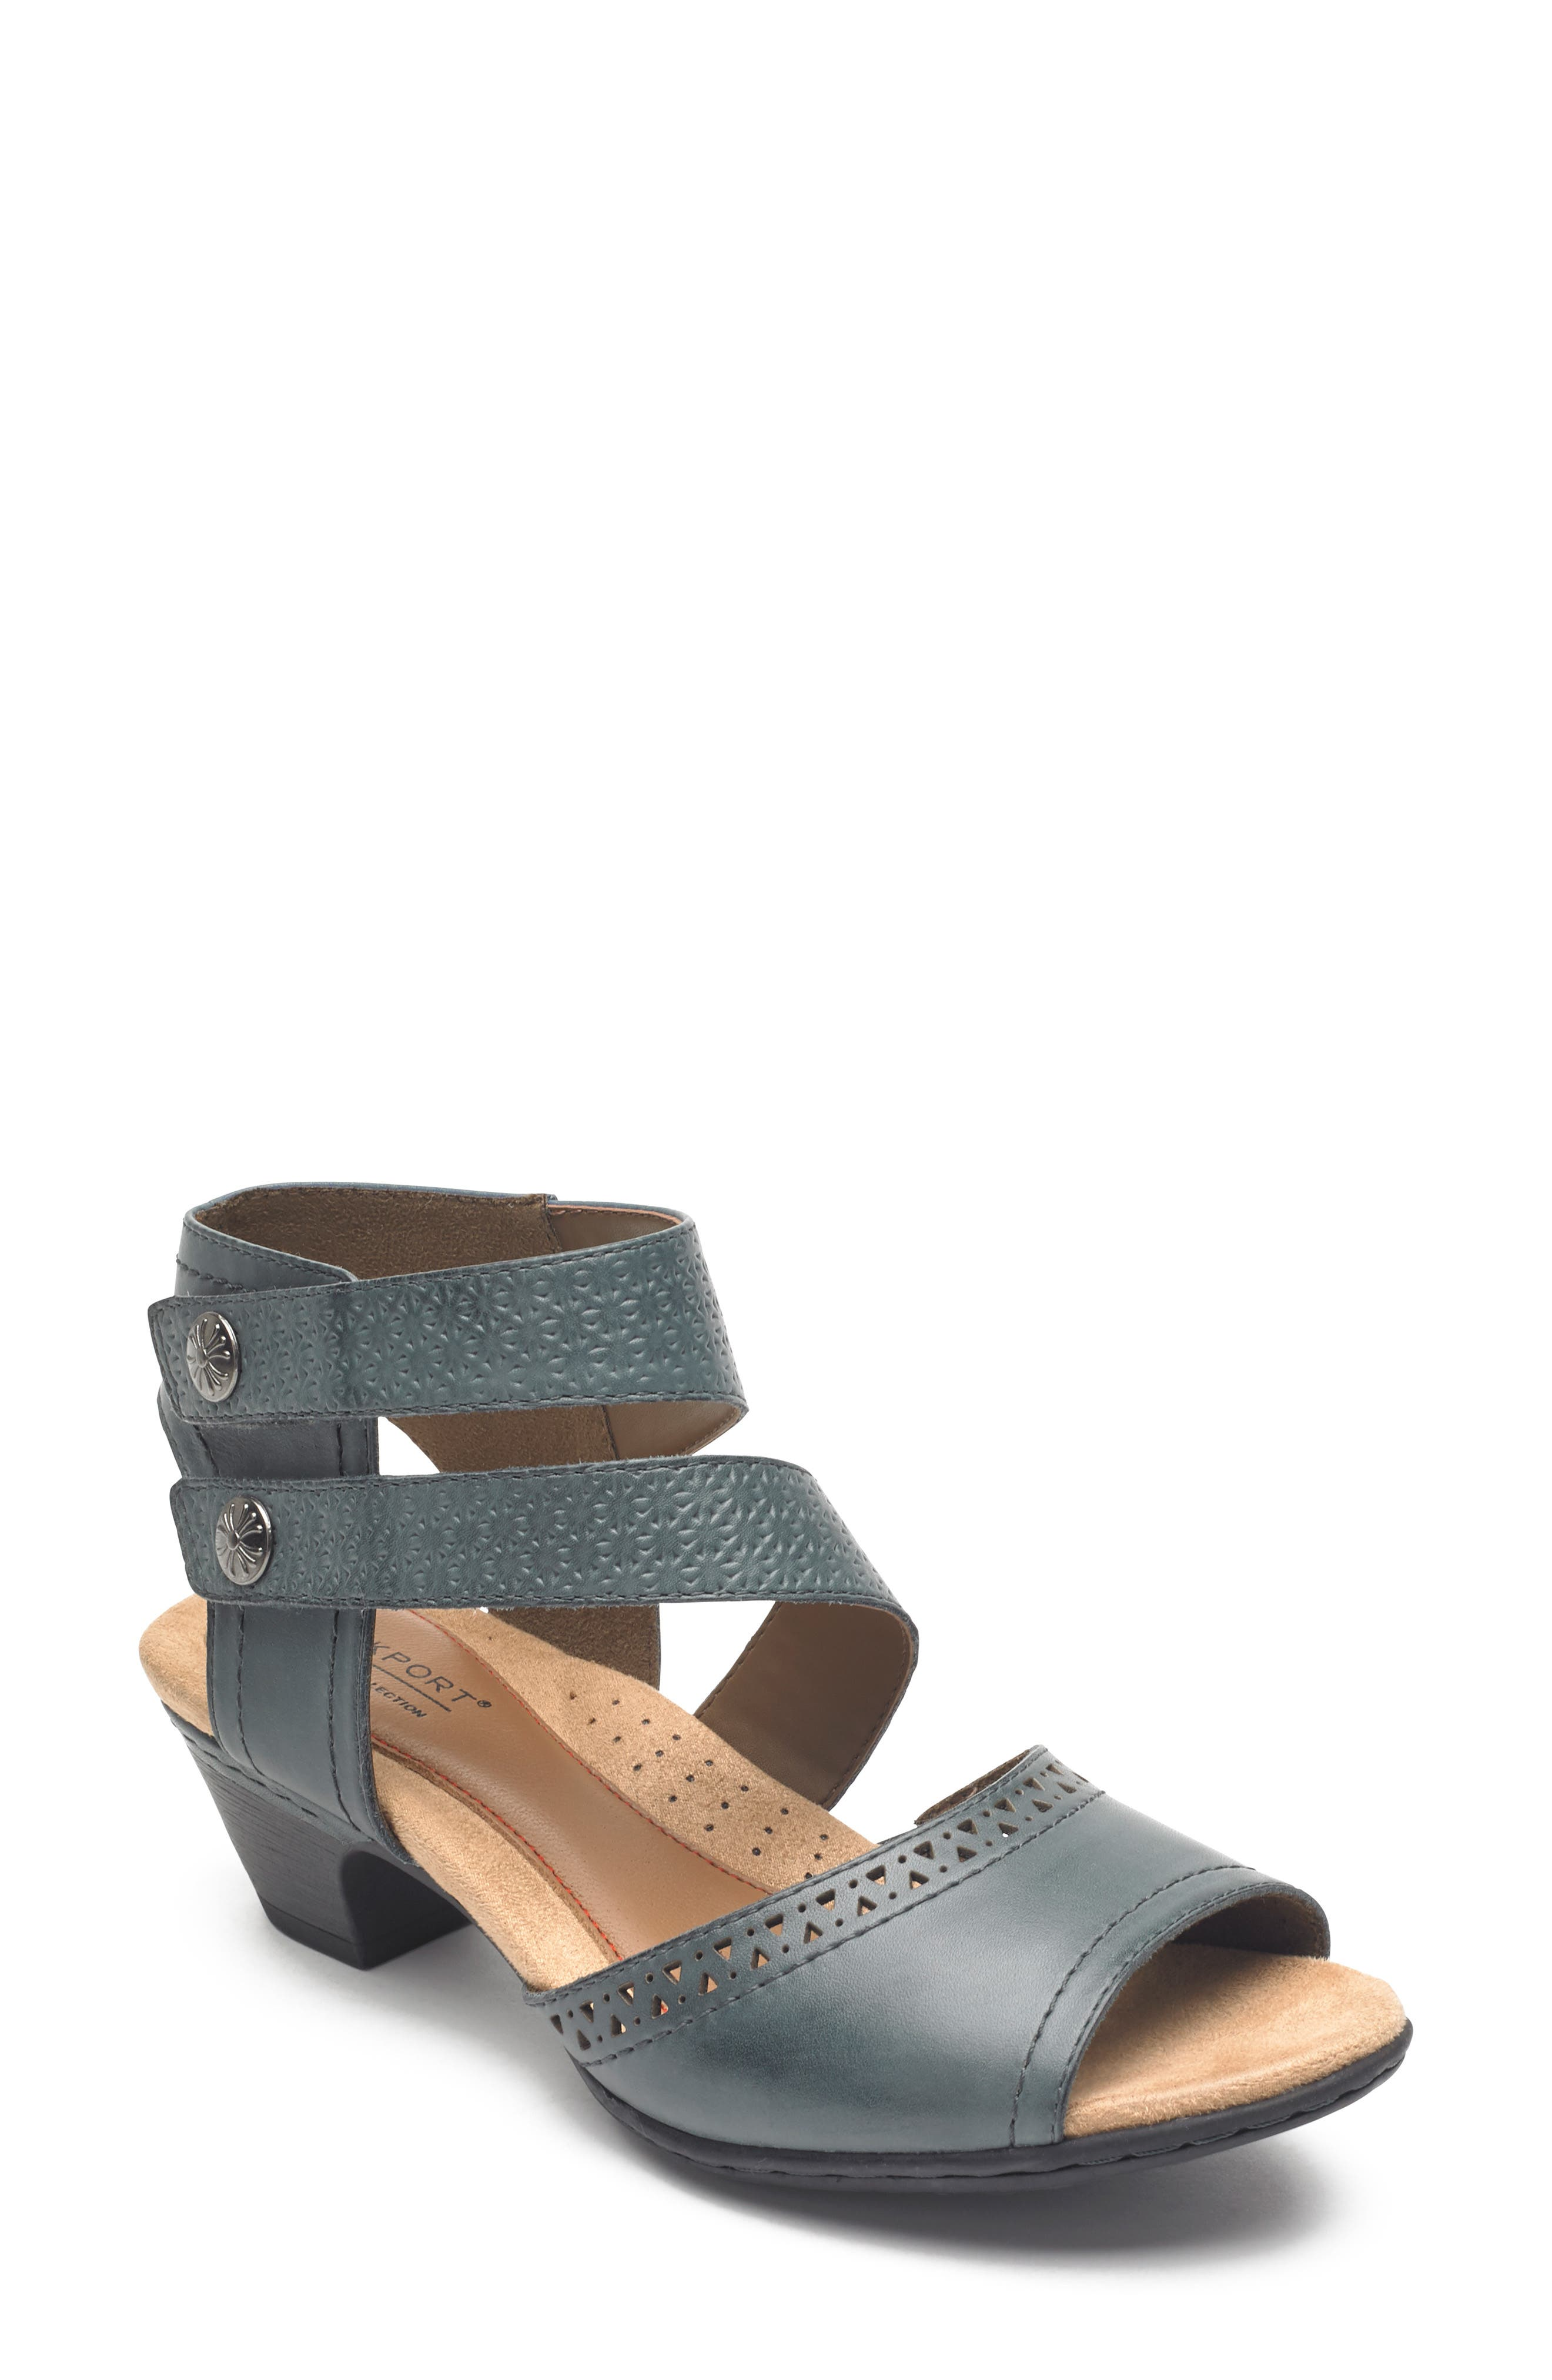 Image of Cobb Hill Abbott Double Cuff Perforated Sandal